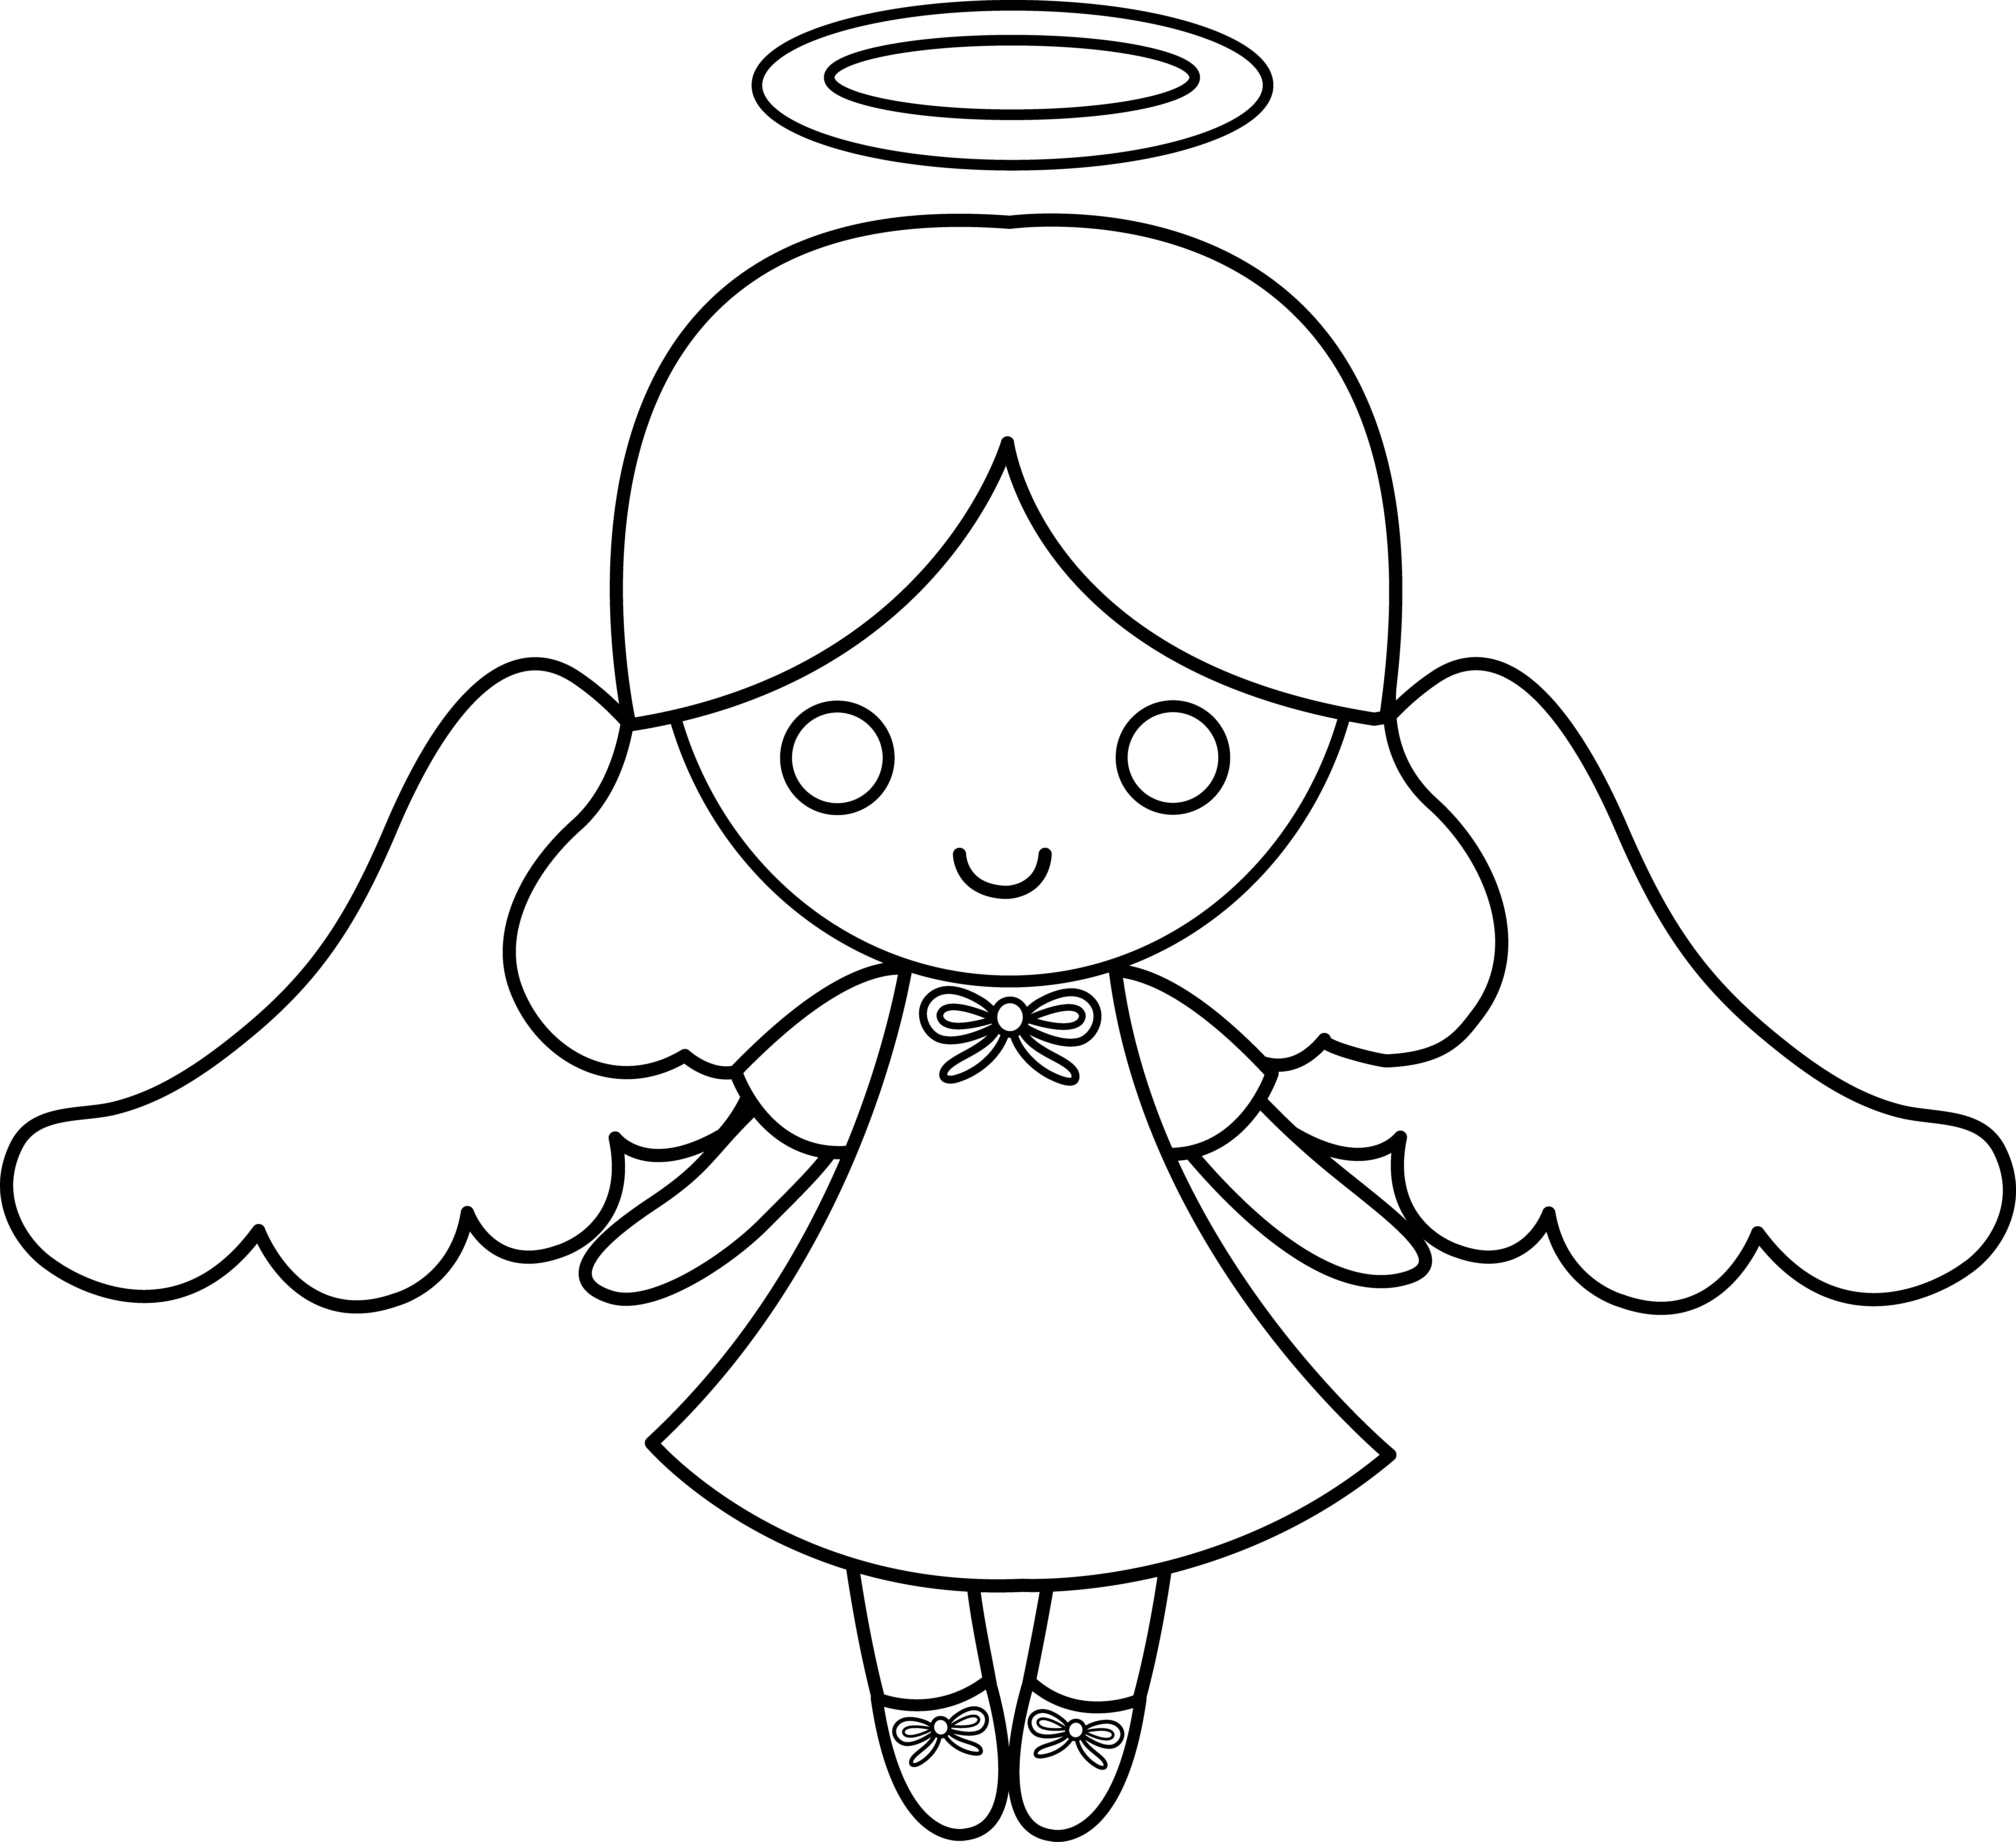 Clipart reindeer colorable. Cute little angel free